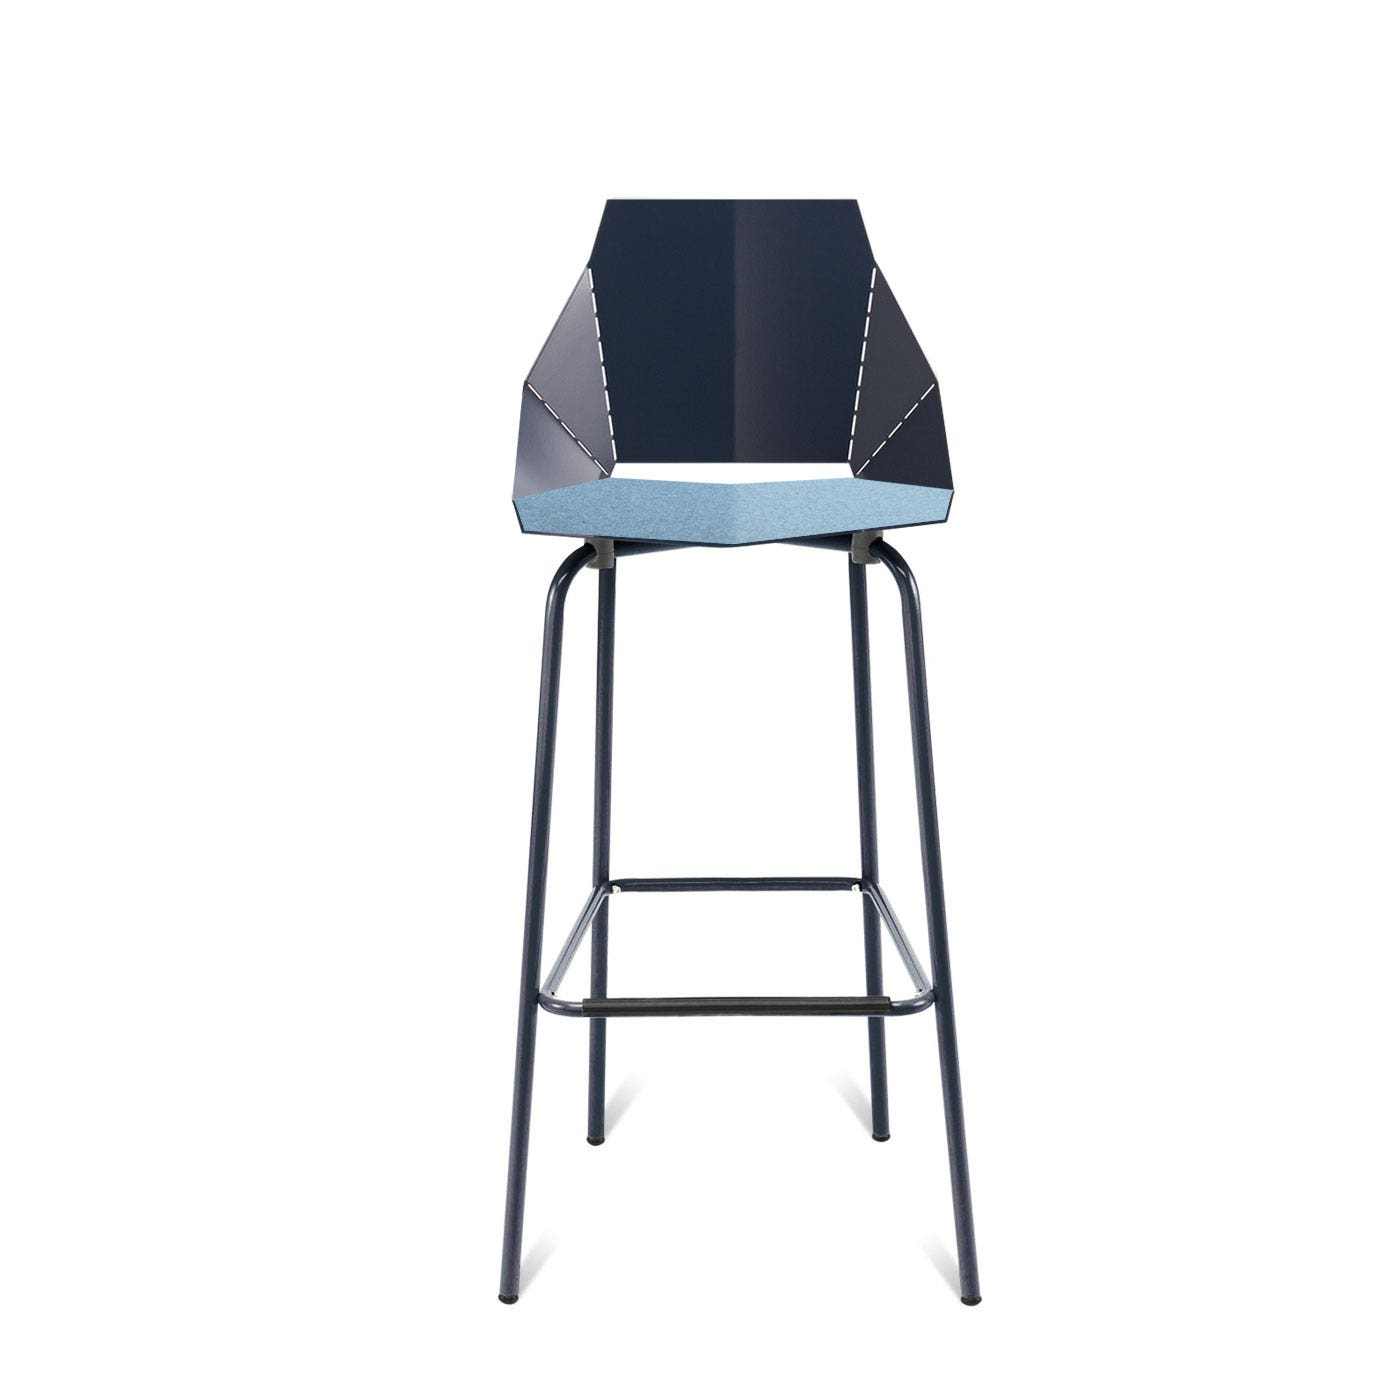 Previous Image Real Good Felt Stool Pad   Heathered Light Blue ...